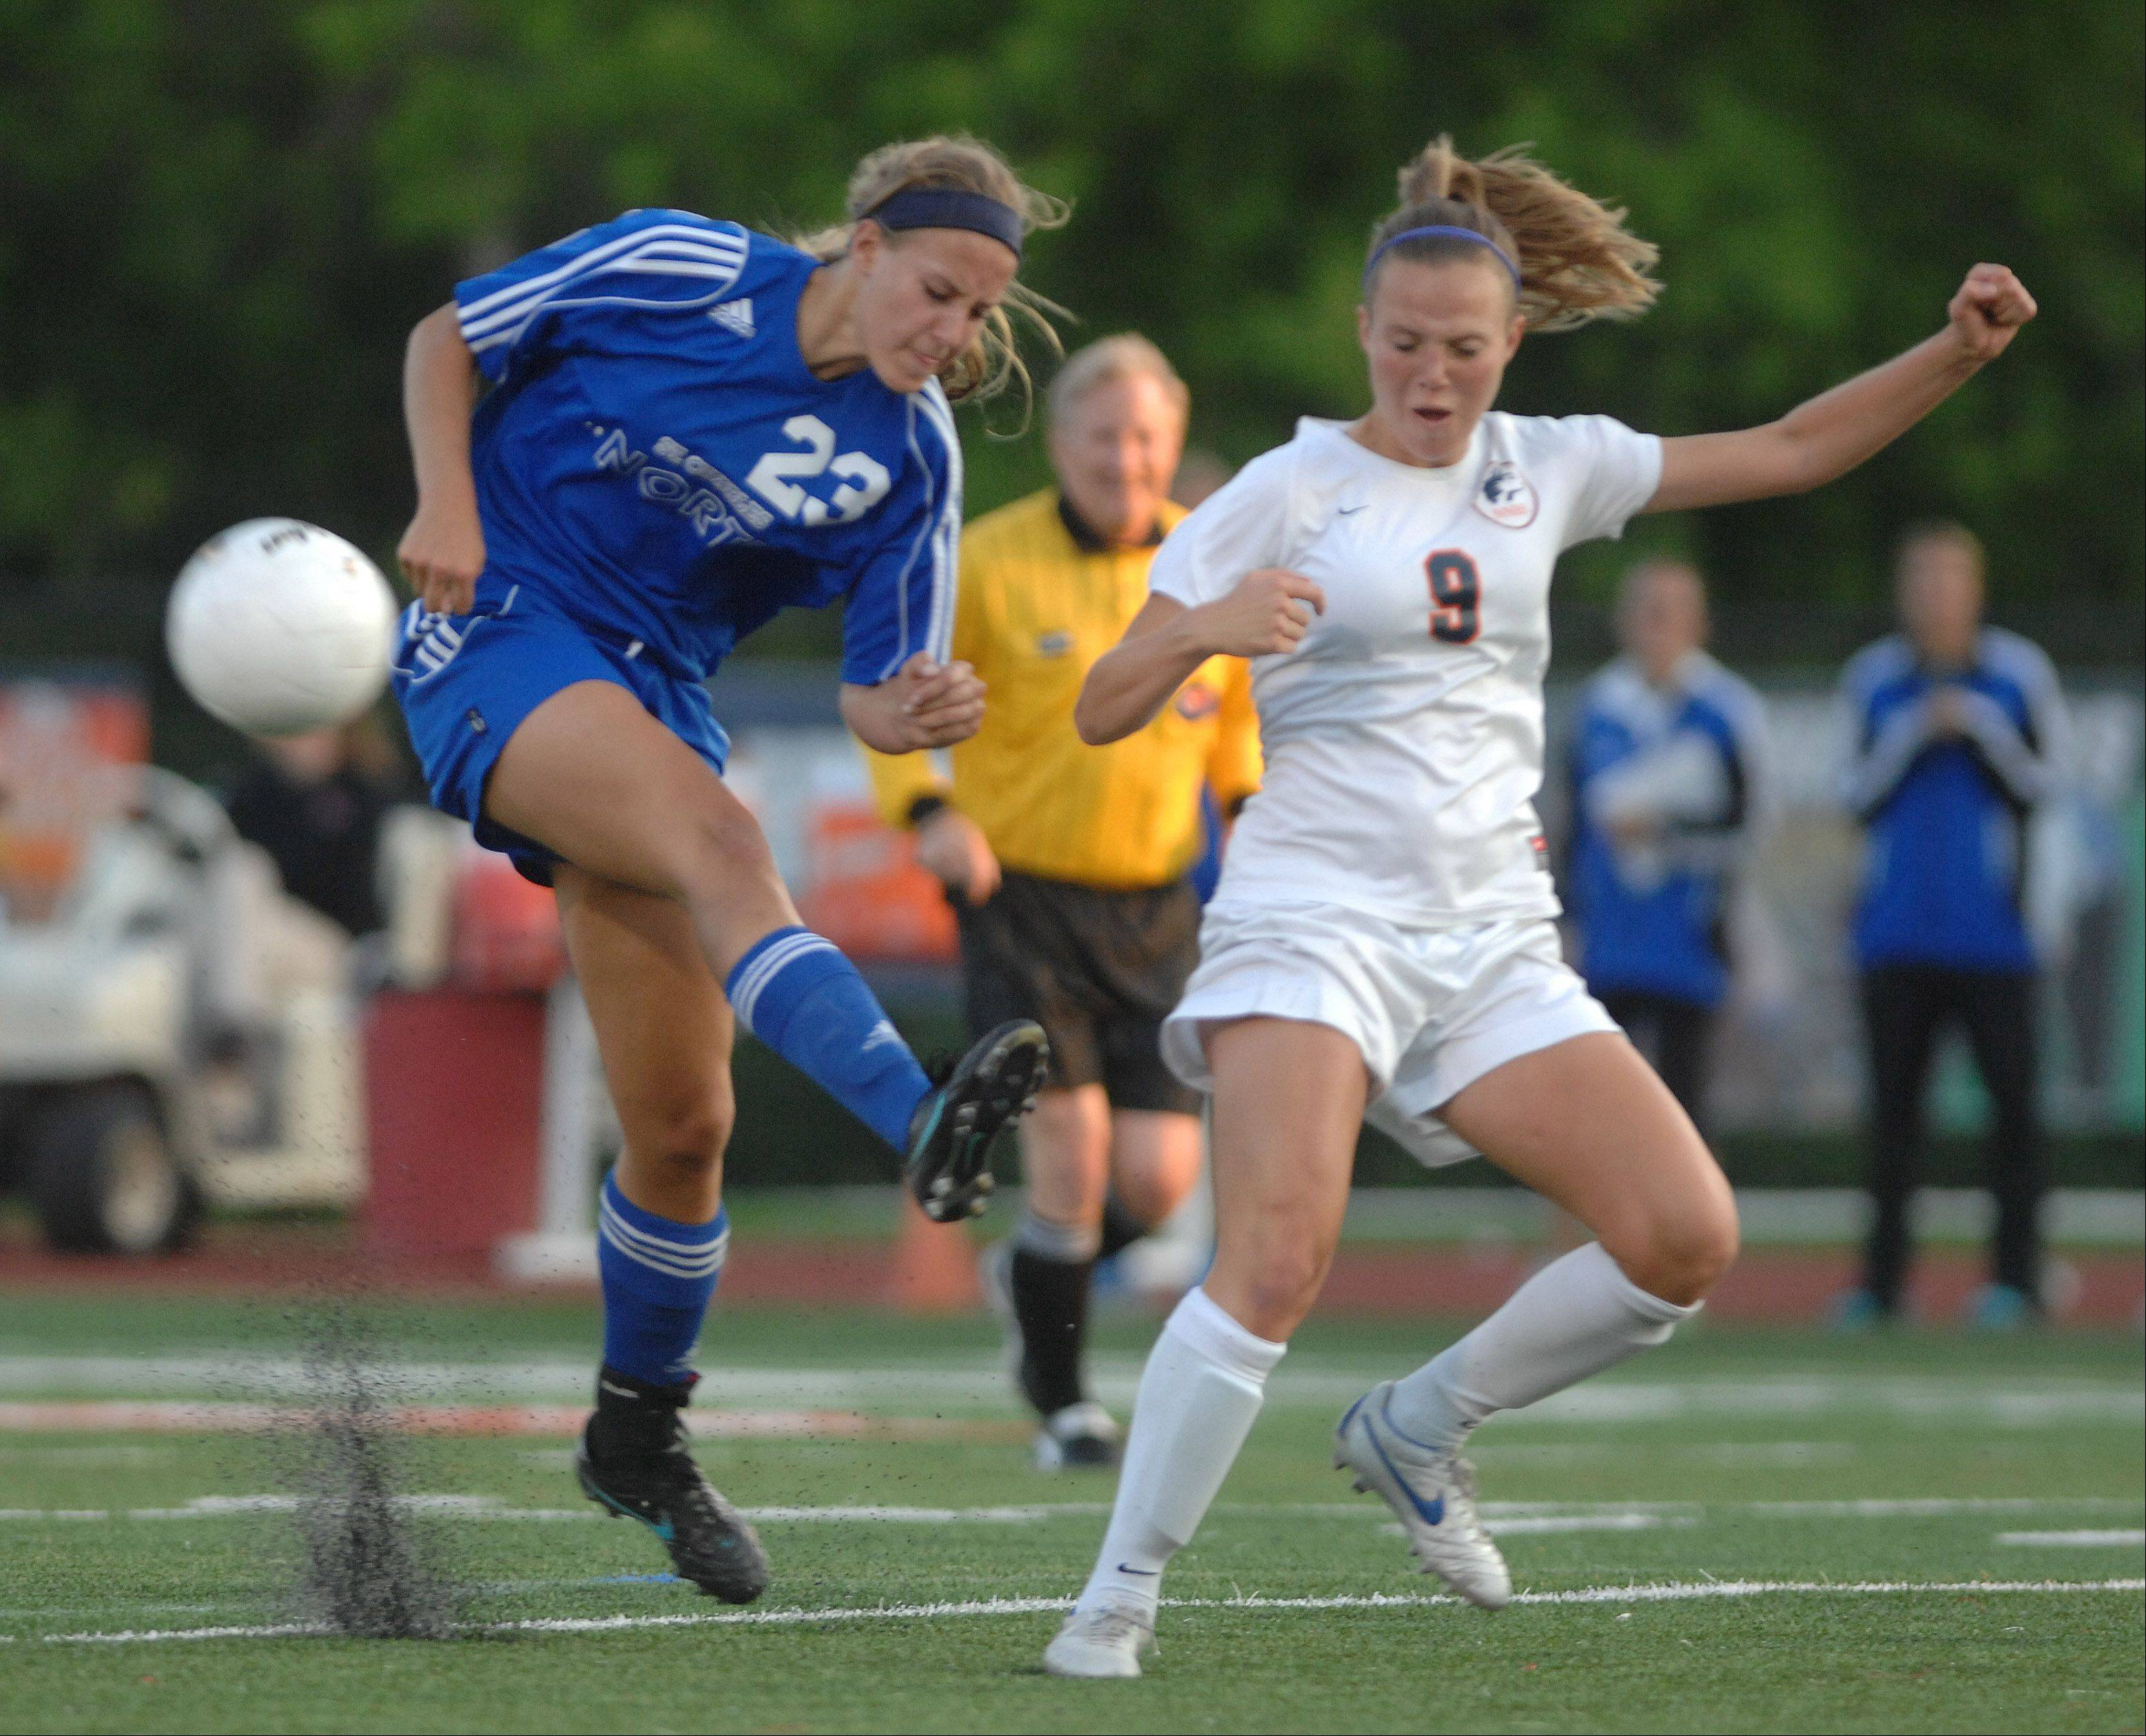 Lauren Koehl of St. Charles North and Jen Korn of Naperville North fight for the ball.